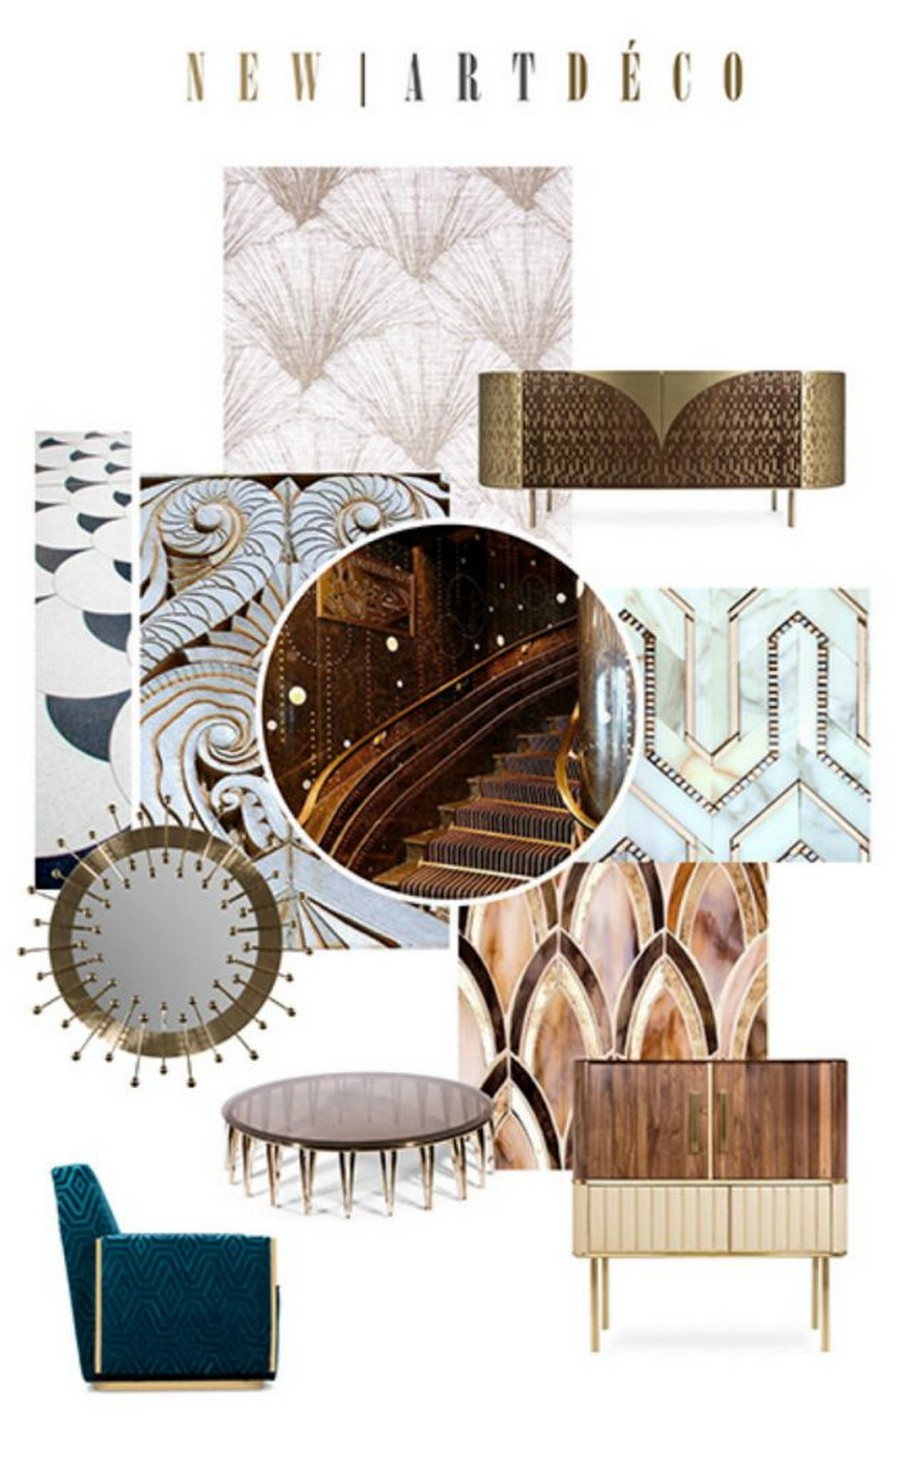 5 Inspirational Design Moodboards To Upgrade Your Home Decor home decor 5 Inspirational Design Moodboards To Upgrade Your Home Decor 5 Inspirational Design Moodboards To Upgrade Your Home Decor 3